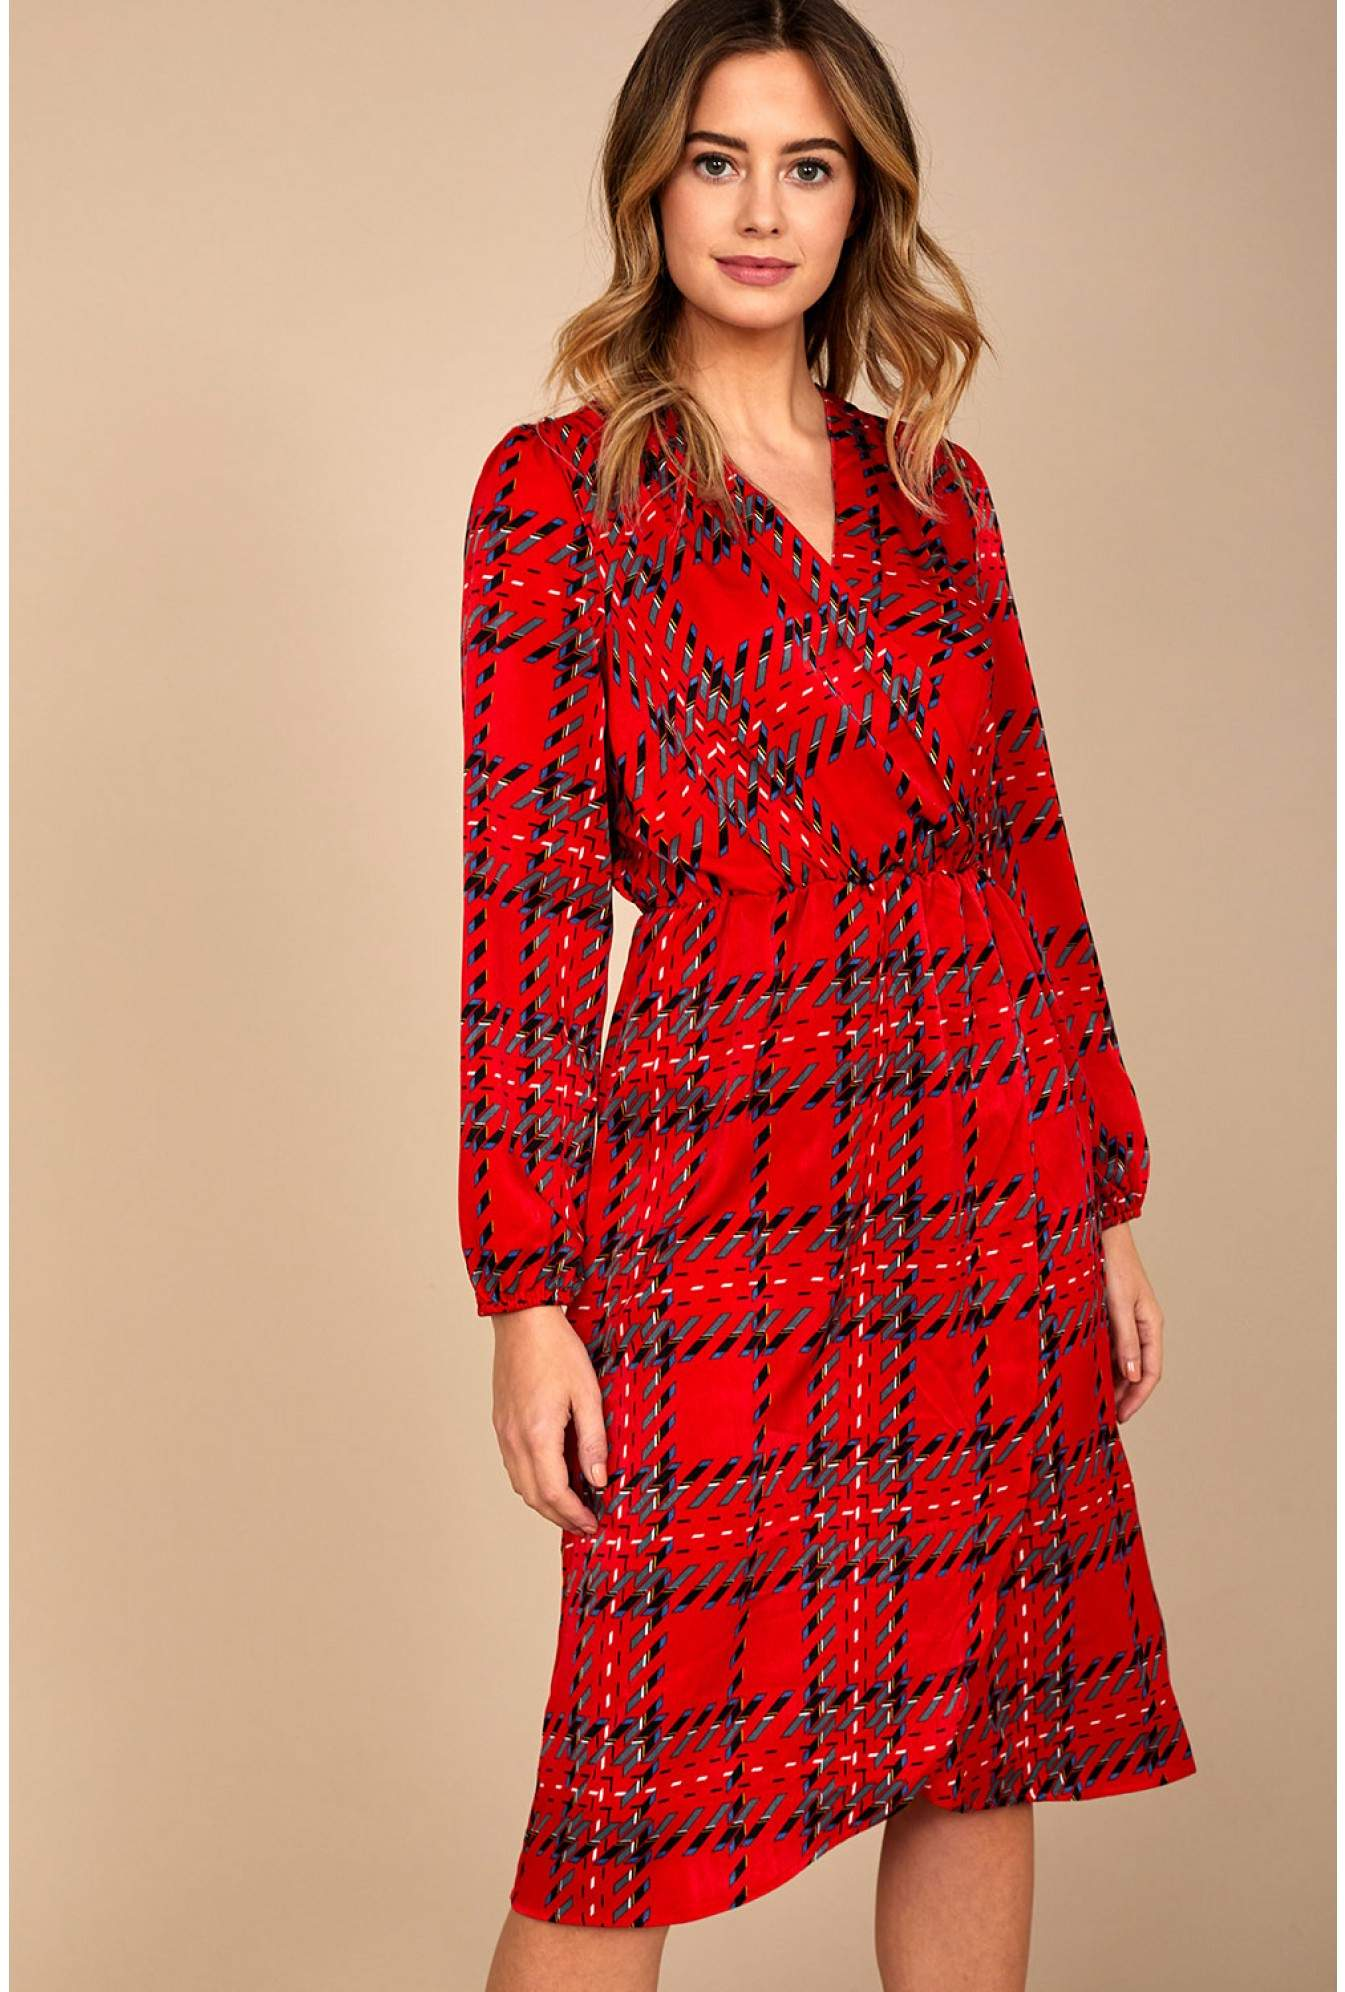 52484909 Marc Angelo Olympia Abstract Print Midi Dress in Red | iCLOTHING